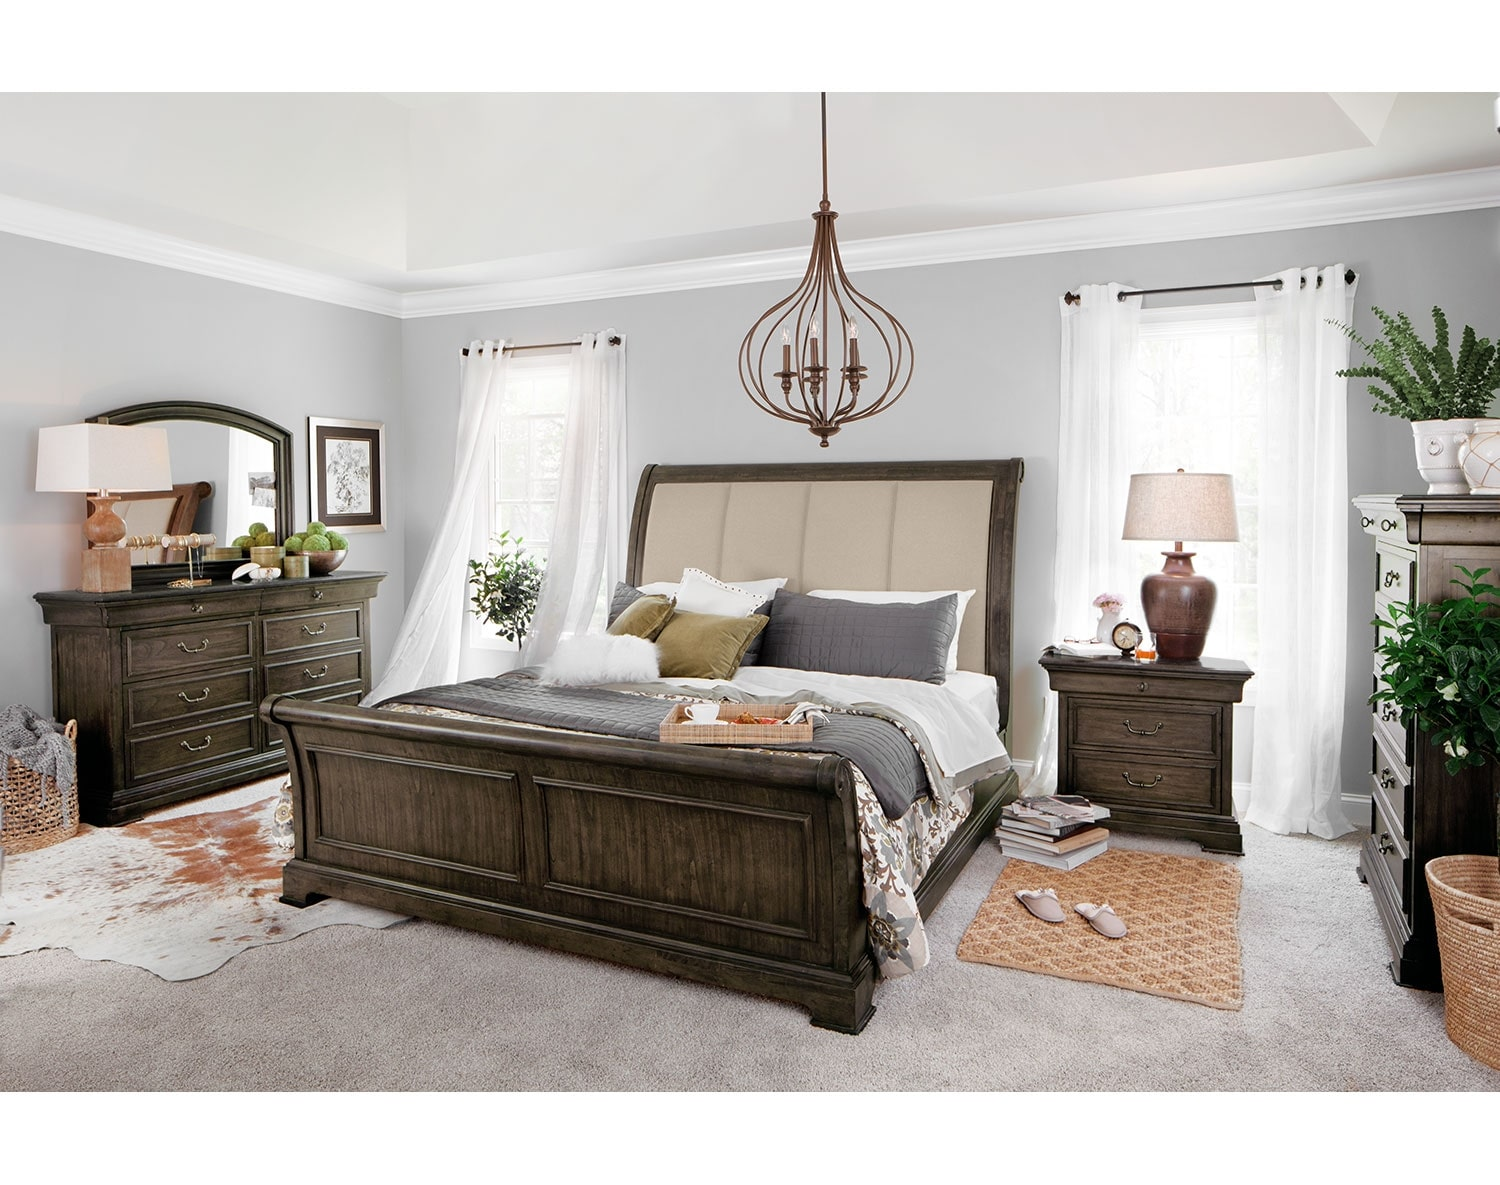 The Collinwood Bedroom Collection